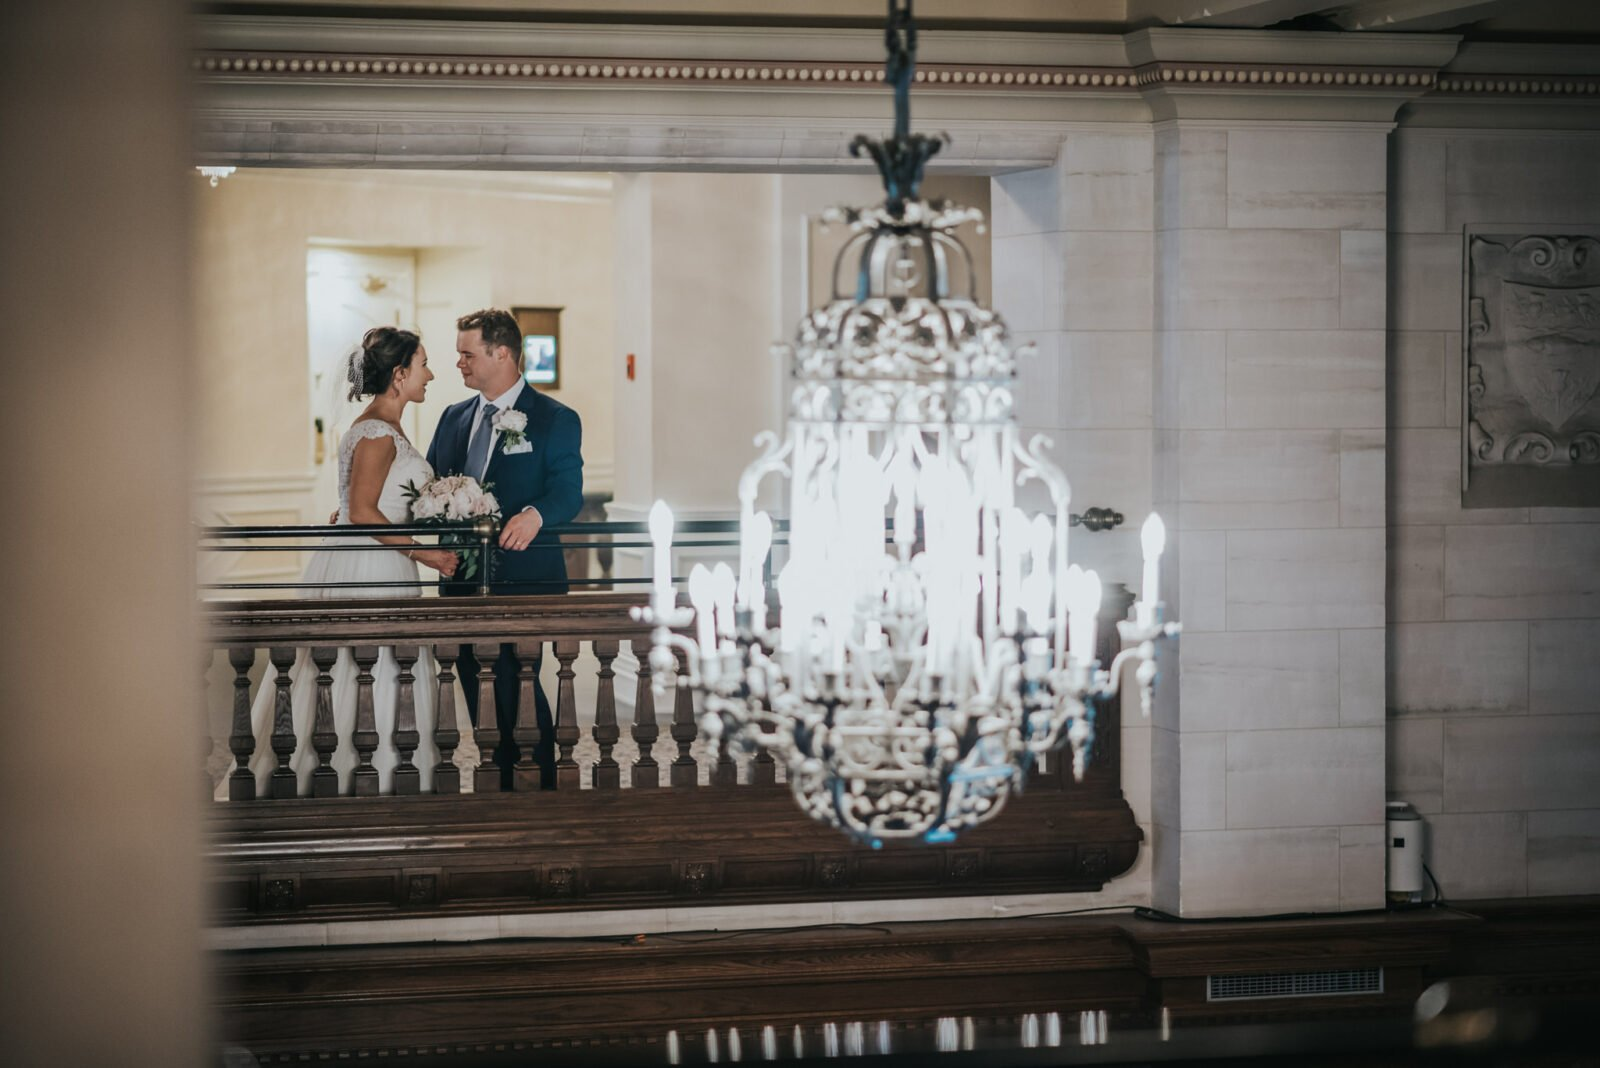 edmonton fairmont hotel macdonald wedding photo